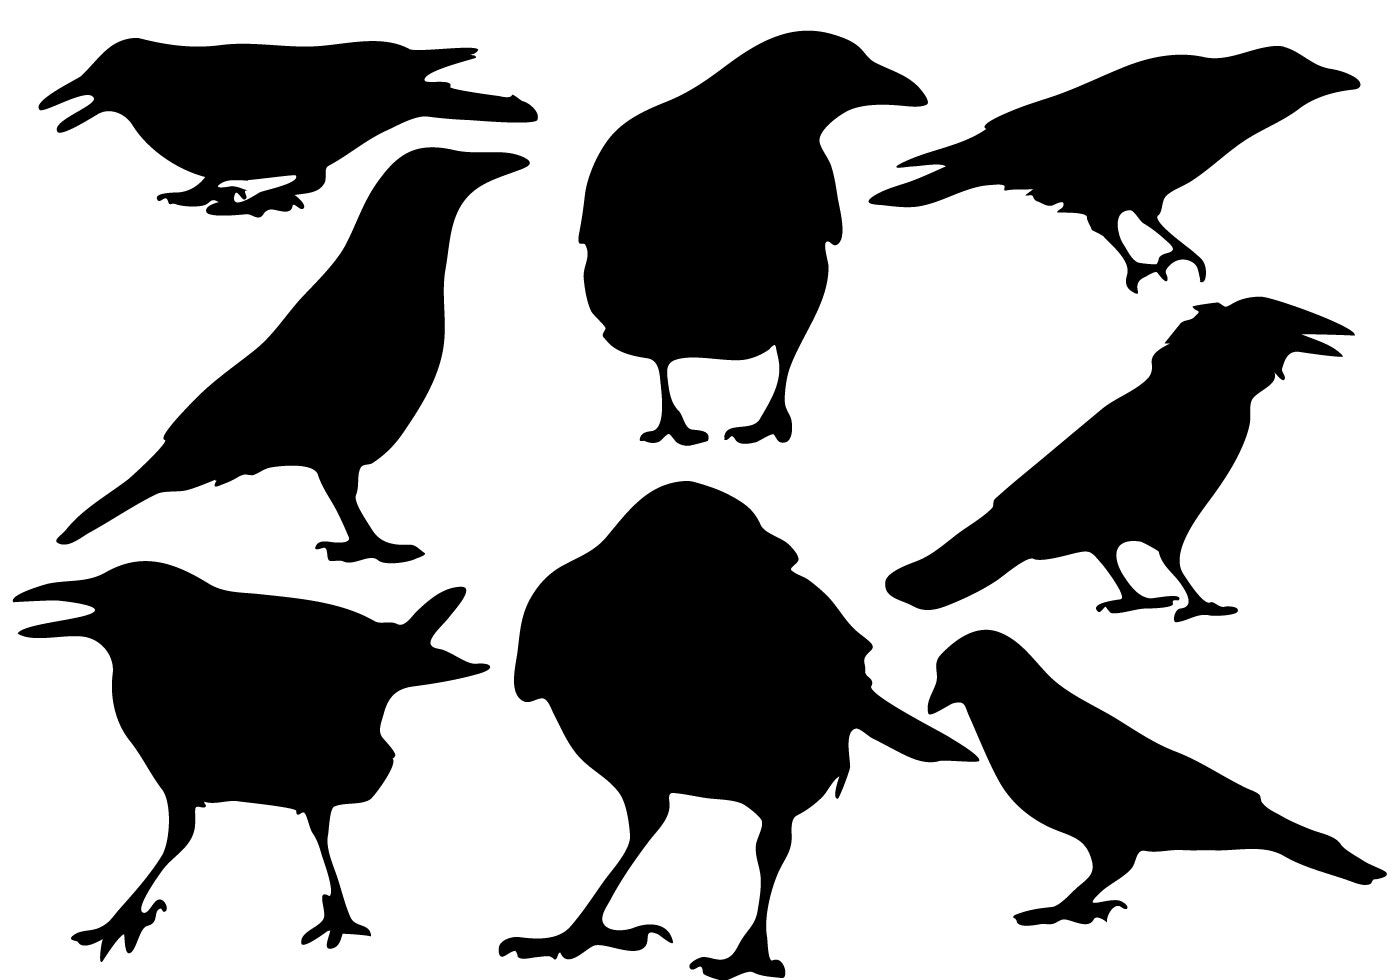 1400x980 Image Result For Raven Silhouette Clip Art Royalty Free Rook